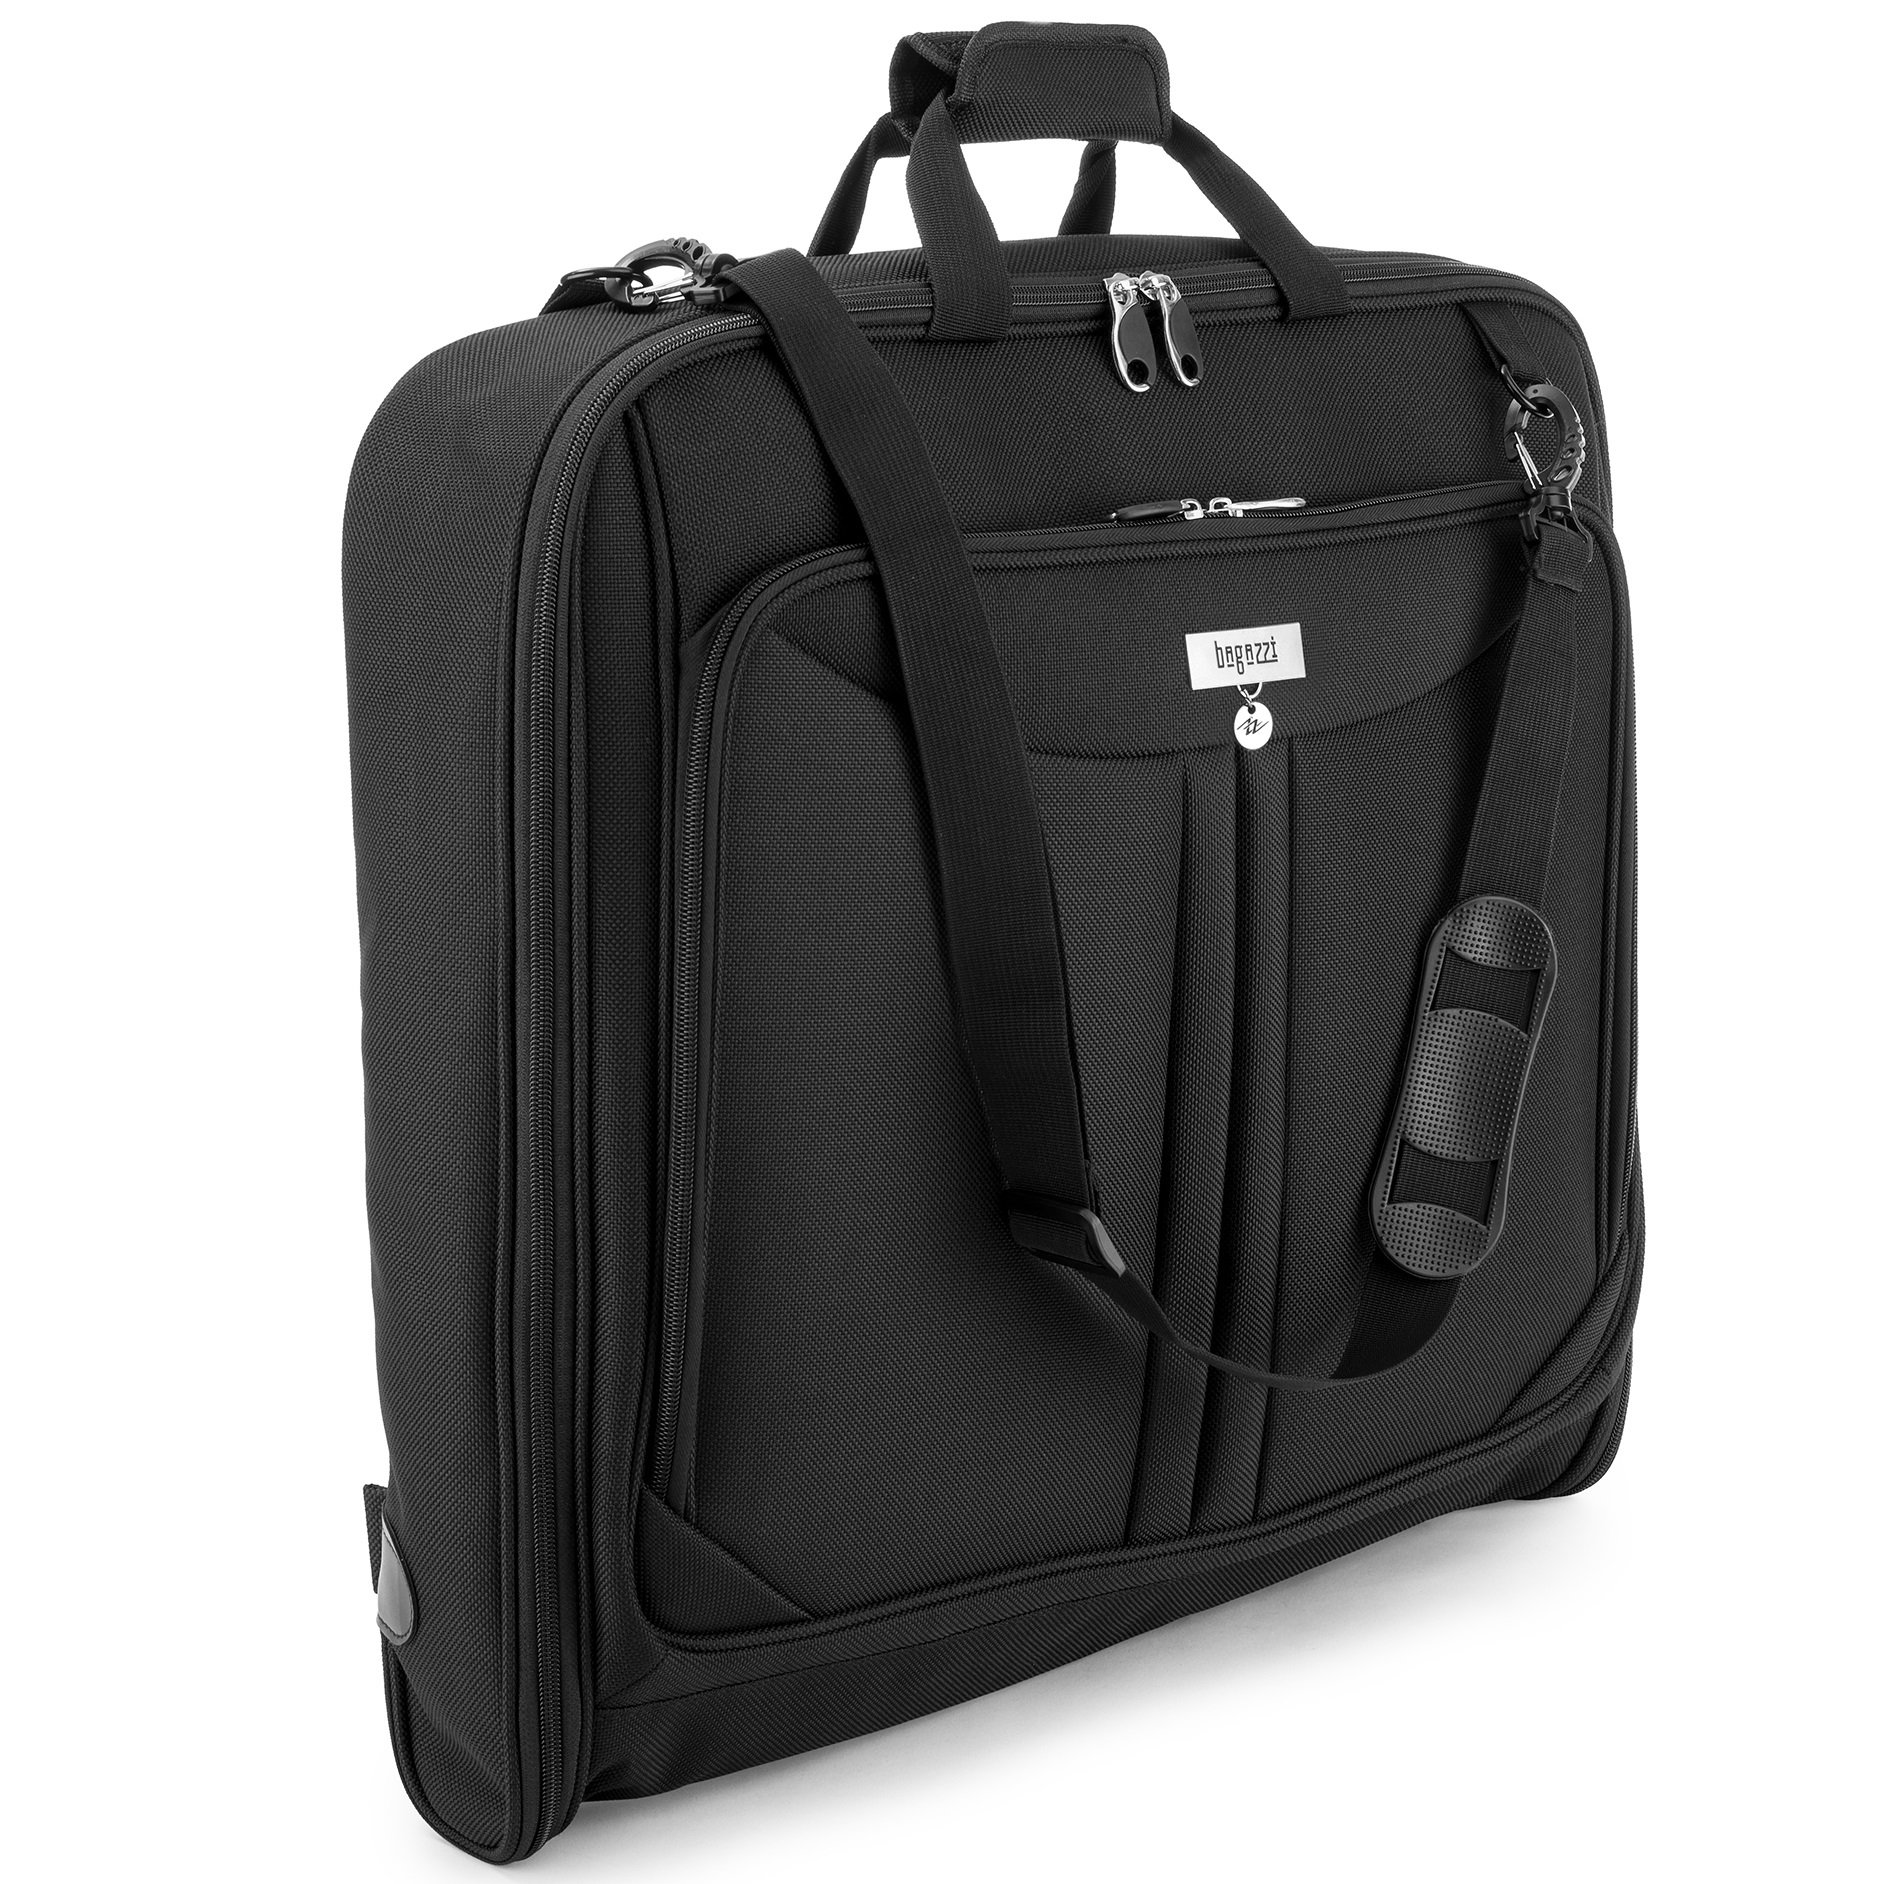 3 Suit Carry On Garment Bag for Travel & Business Trips With Shoulder Strap 40'' Bagazzi Brand by Bagazzi (Image #2)